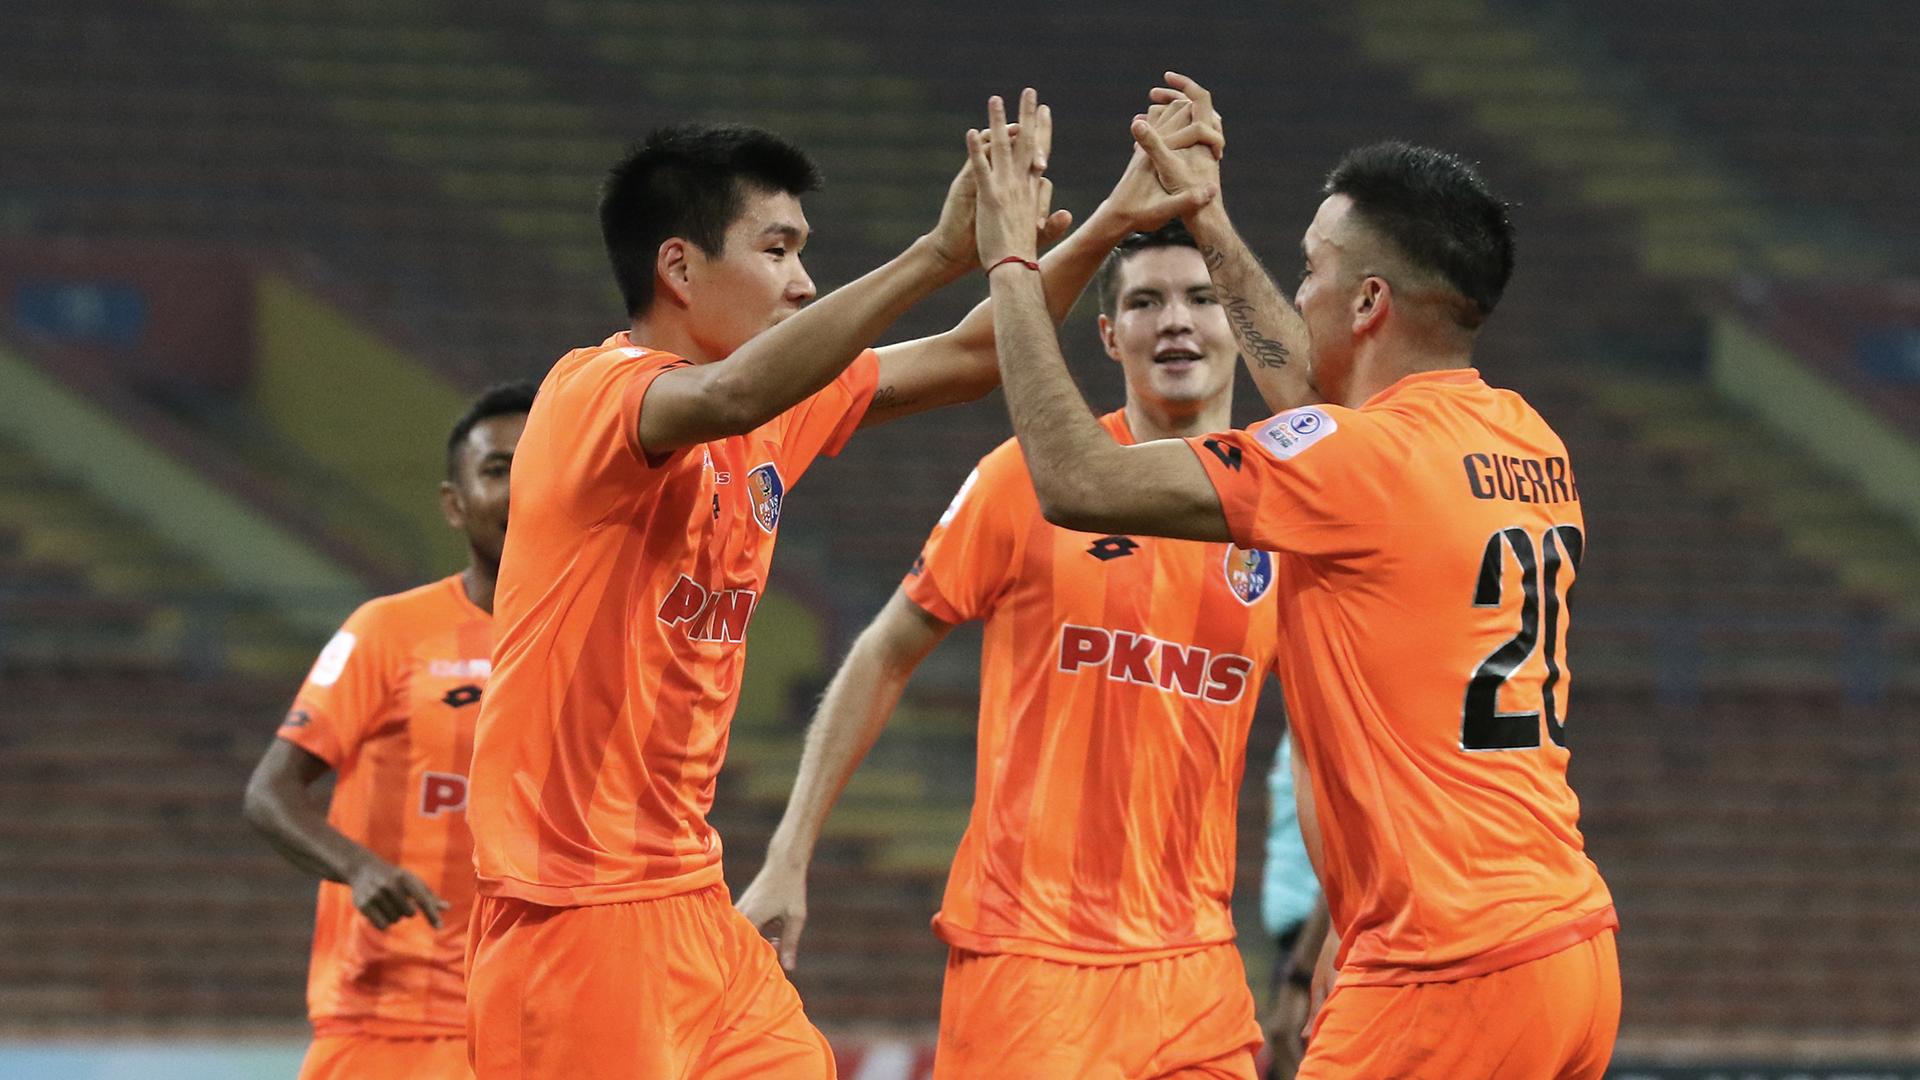 Tamirlan Kozubaev, PKNS v Felda, Super League 9 Mar 2019